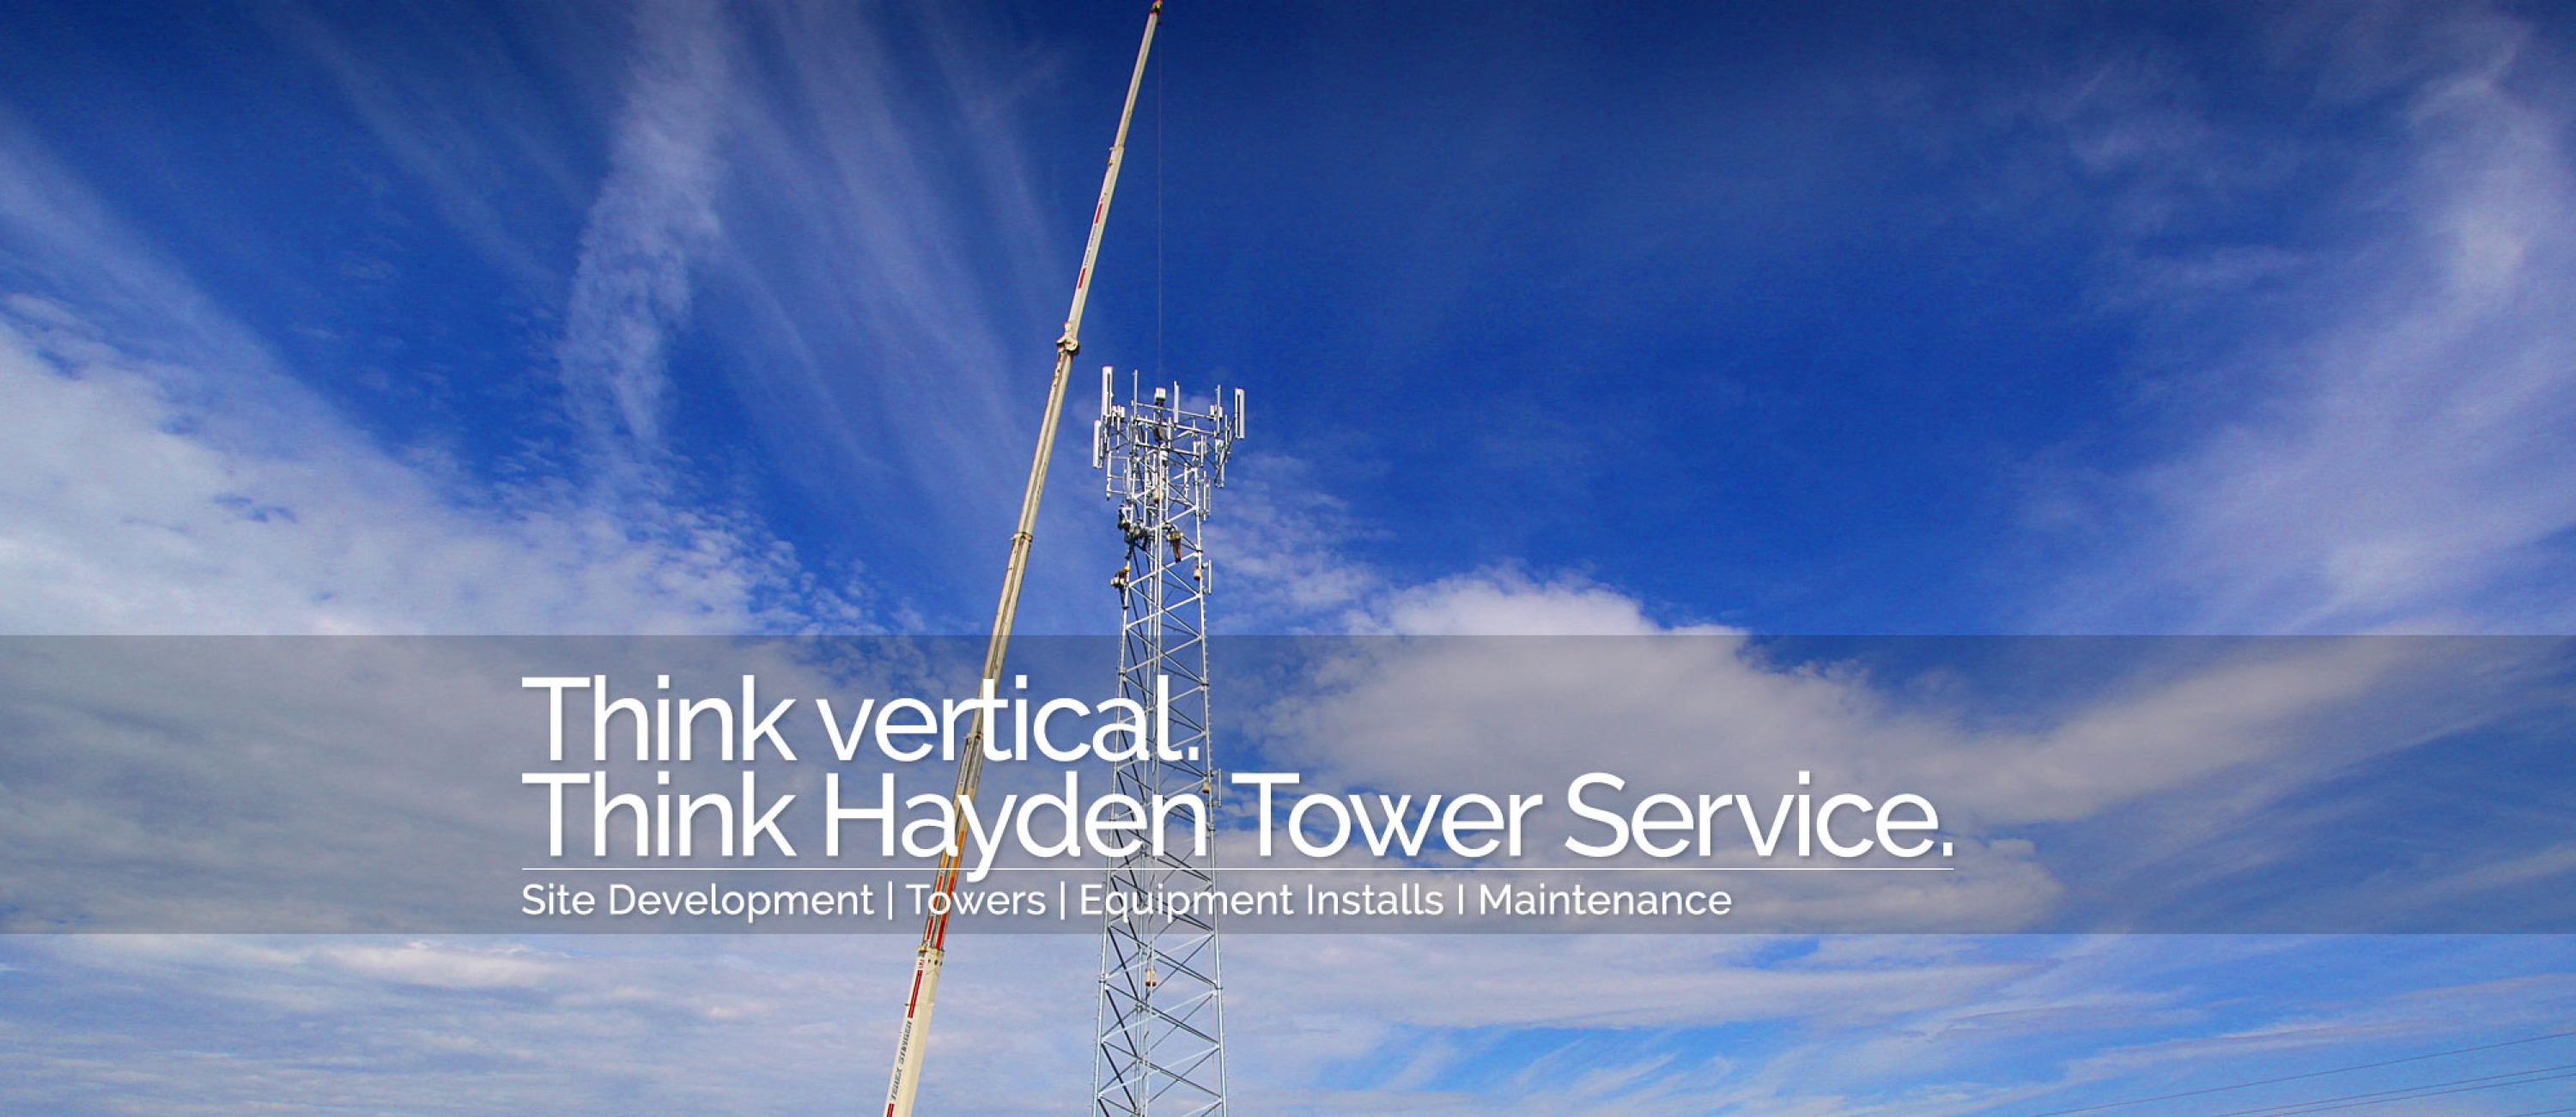 Think vertical. Think Hayden Tower Service.